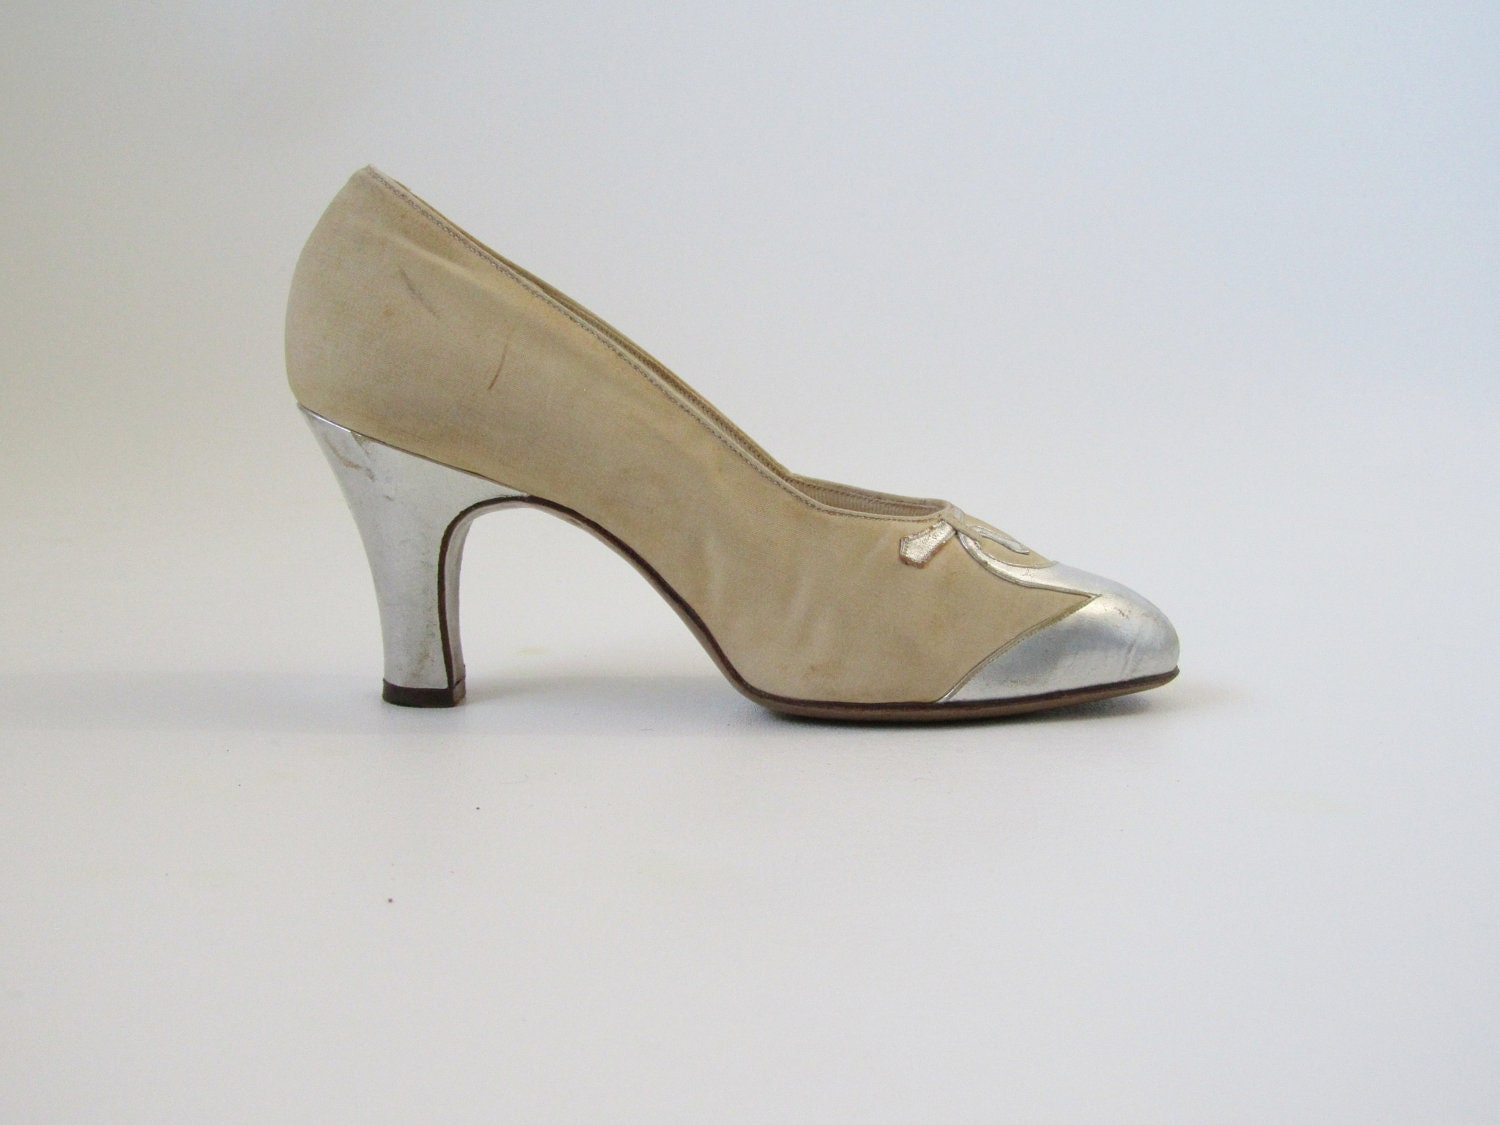 1920s Wedding Shoes 026 - 1920s Wedding Shoes